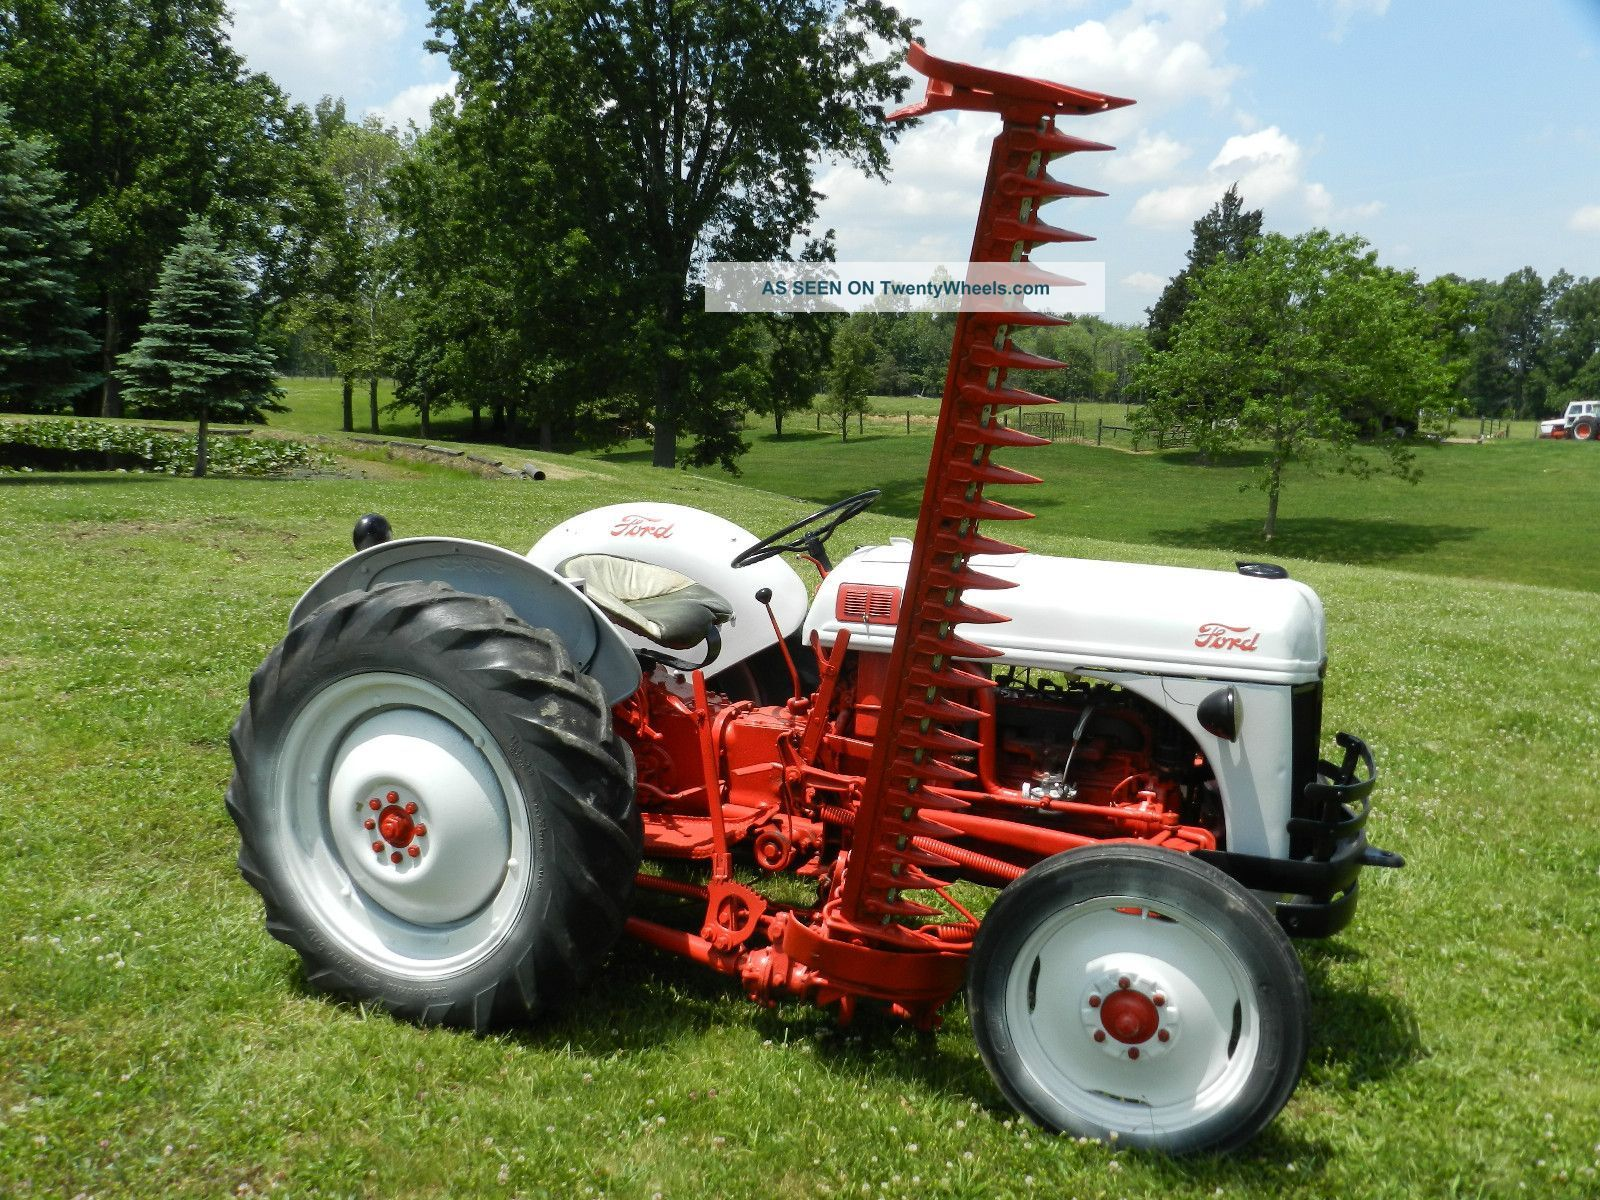 1952 Ford 8n Tractor & 6 Foot Side Sickle Bar Mower | Ford n